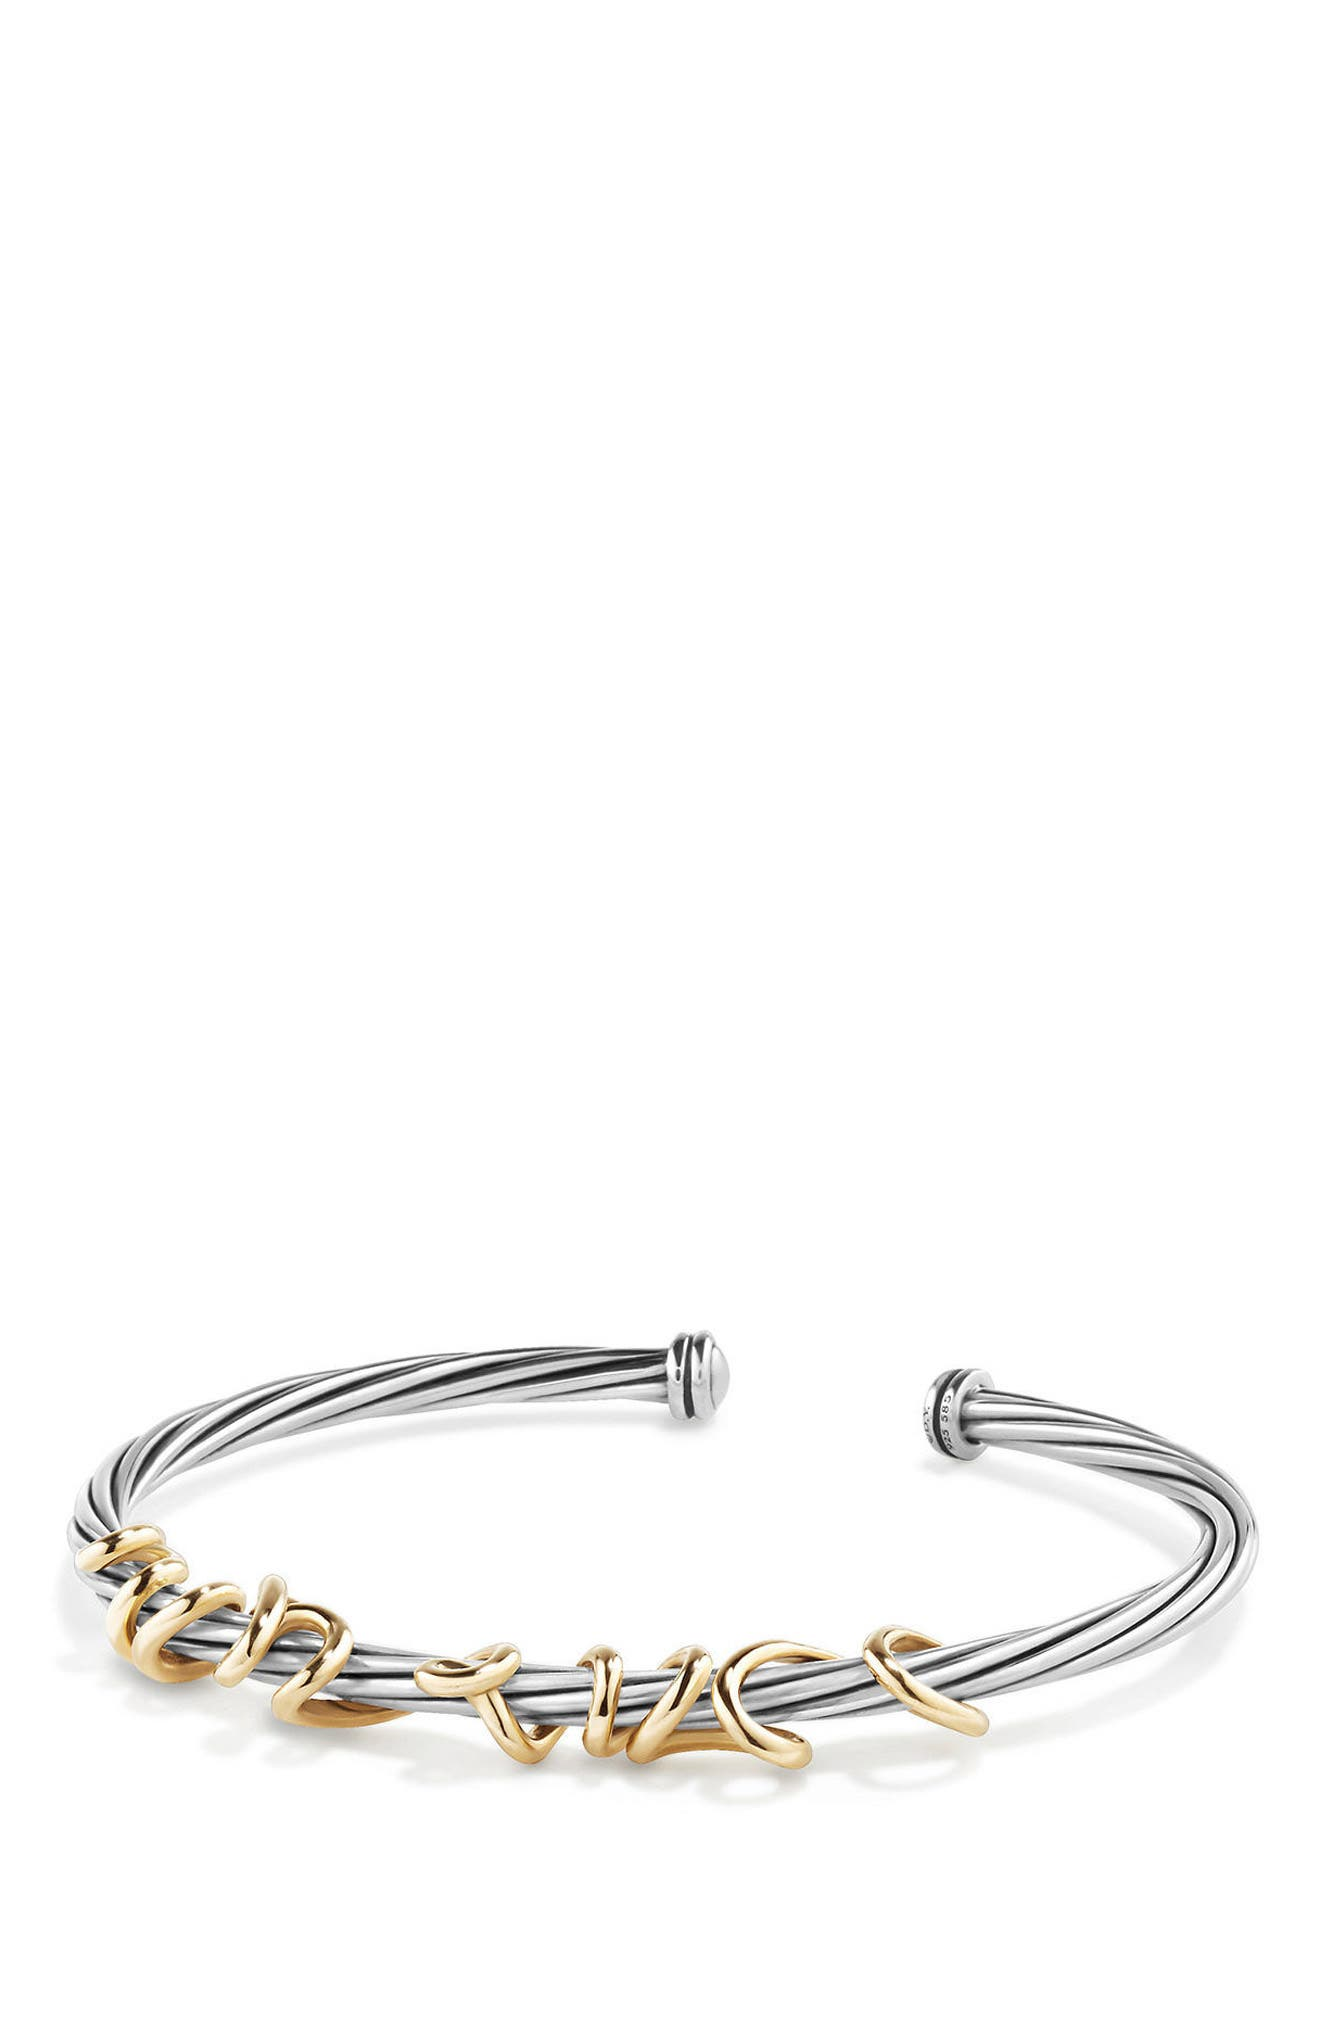 Whispers I Love You Bracelet,                         Main,                         color, SILVER/ GOLD